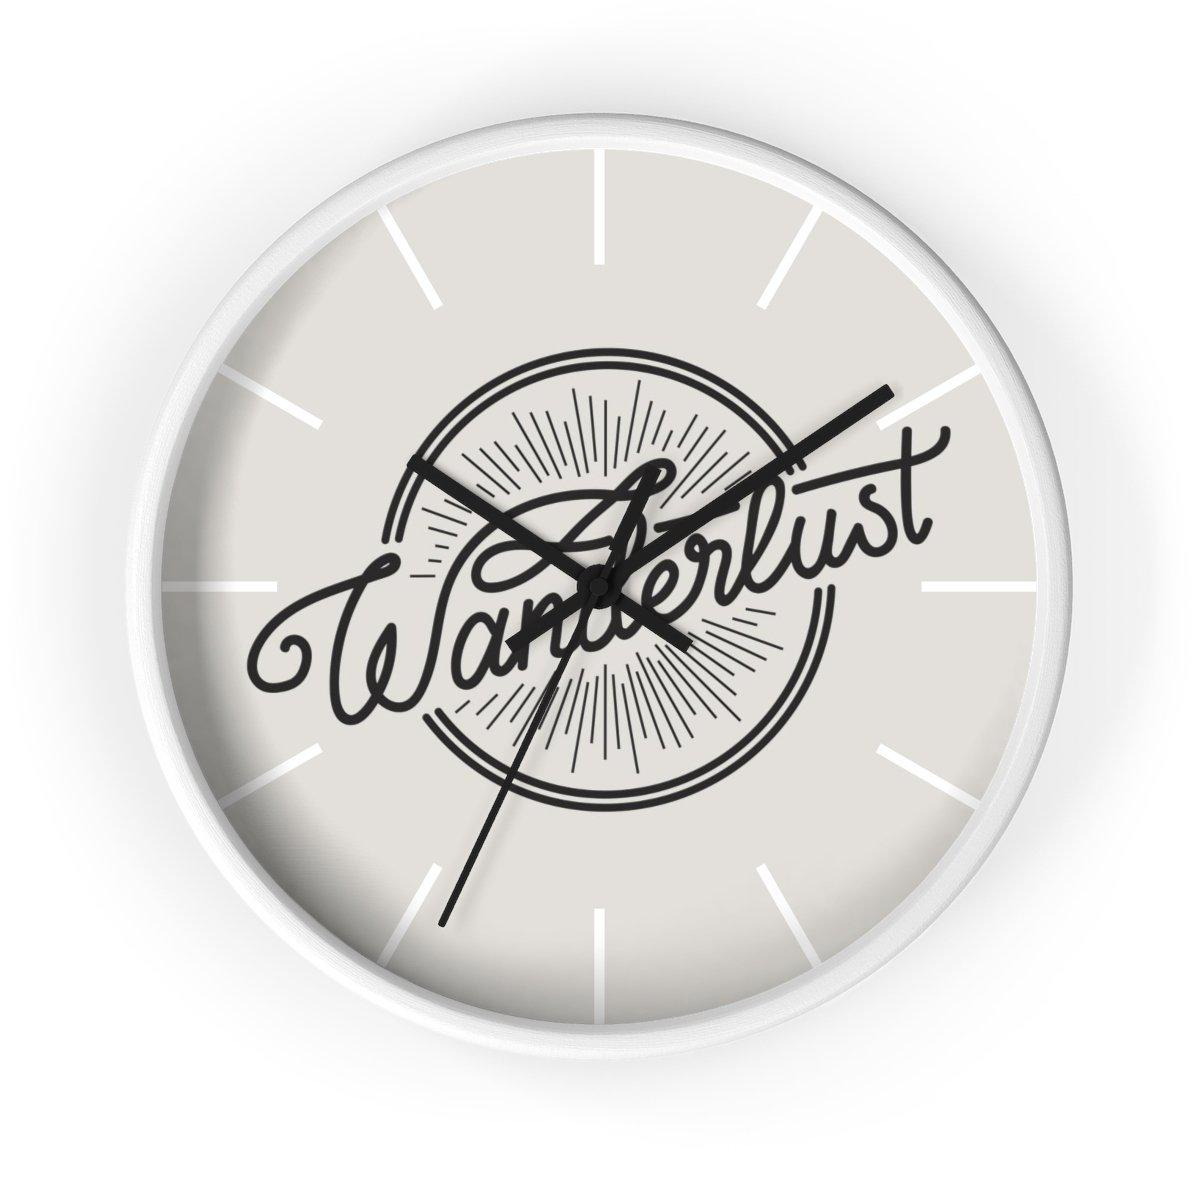 Maison d'Elite Wanderlust Wall clock-Home Décor › Accents › Wall Decor › Clocks & Sculptures-Maison d'Elite-White-Black-Très Elite